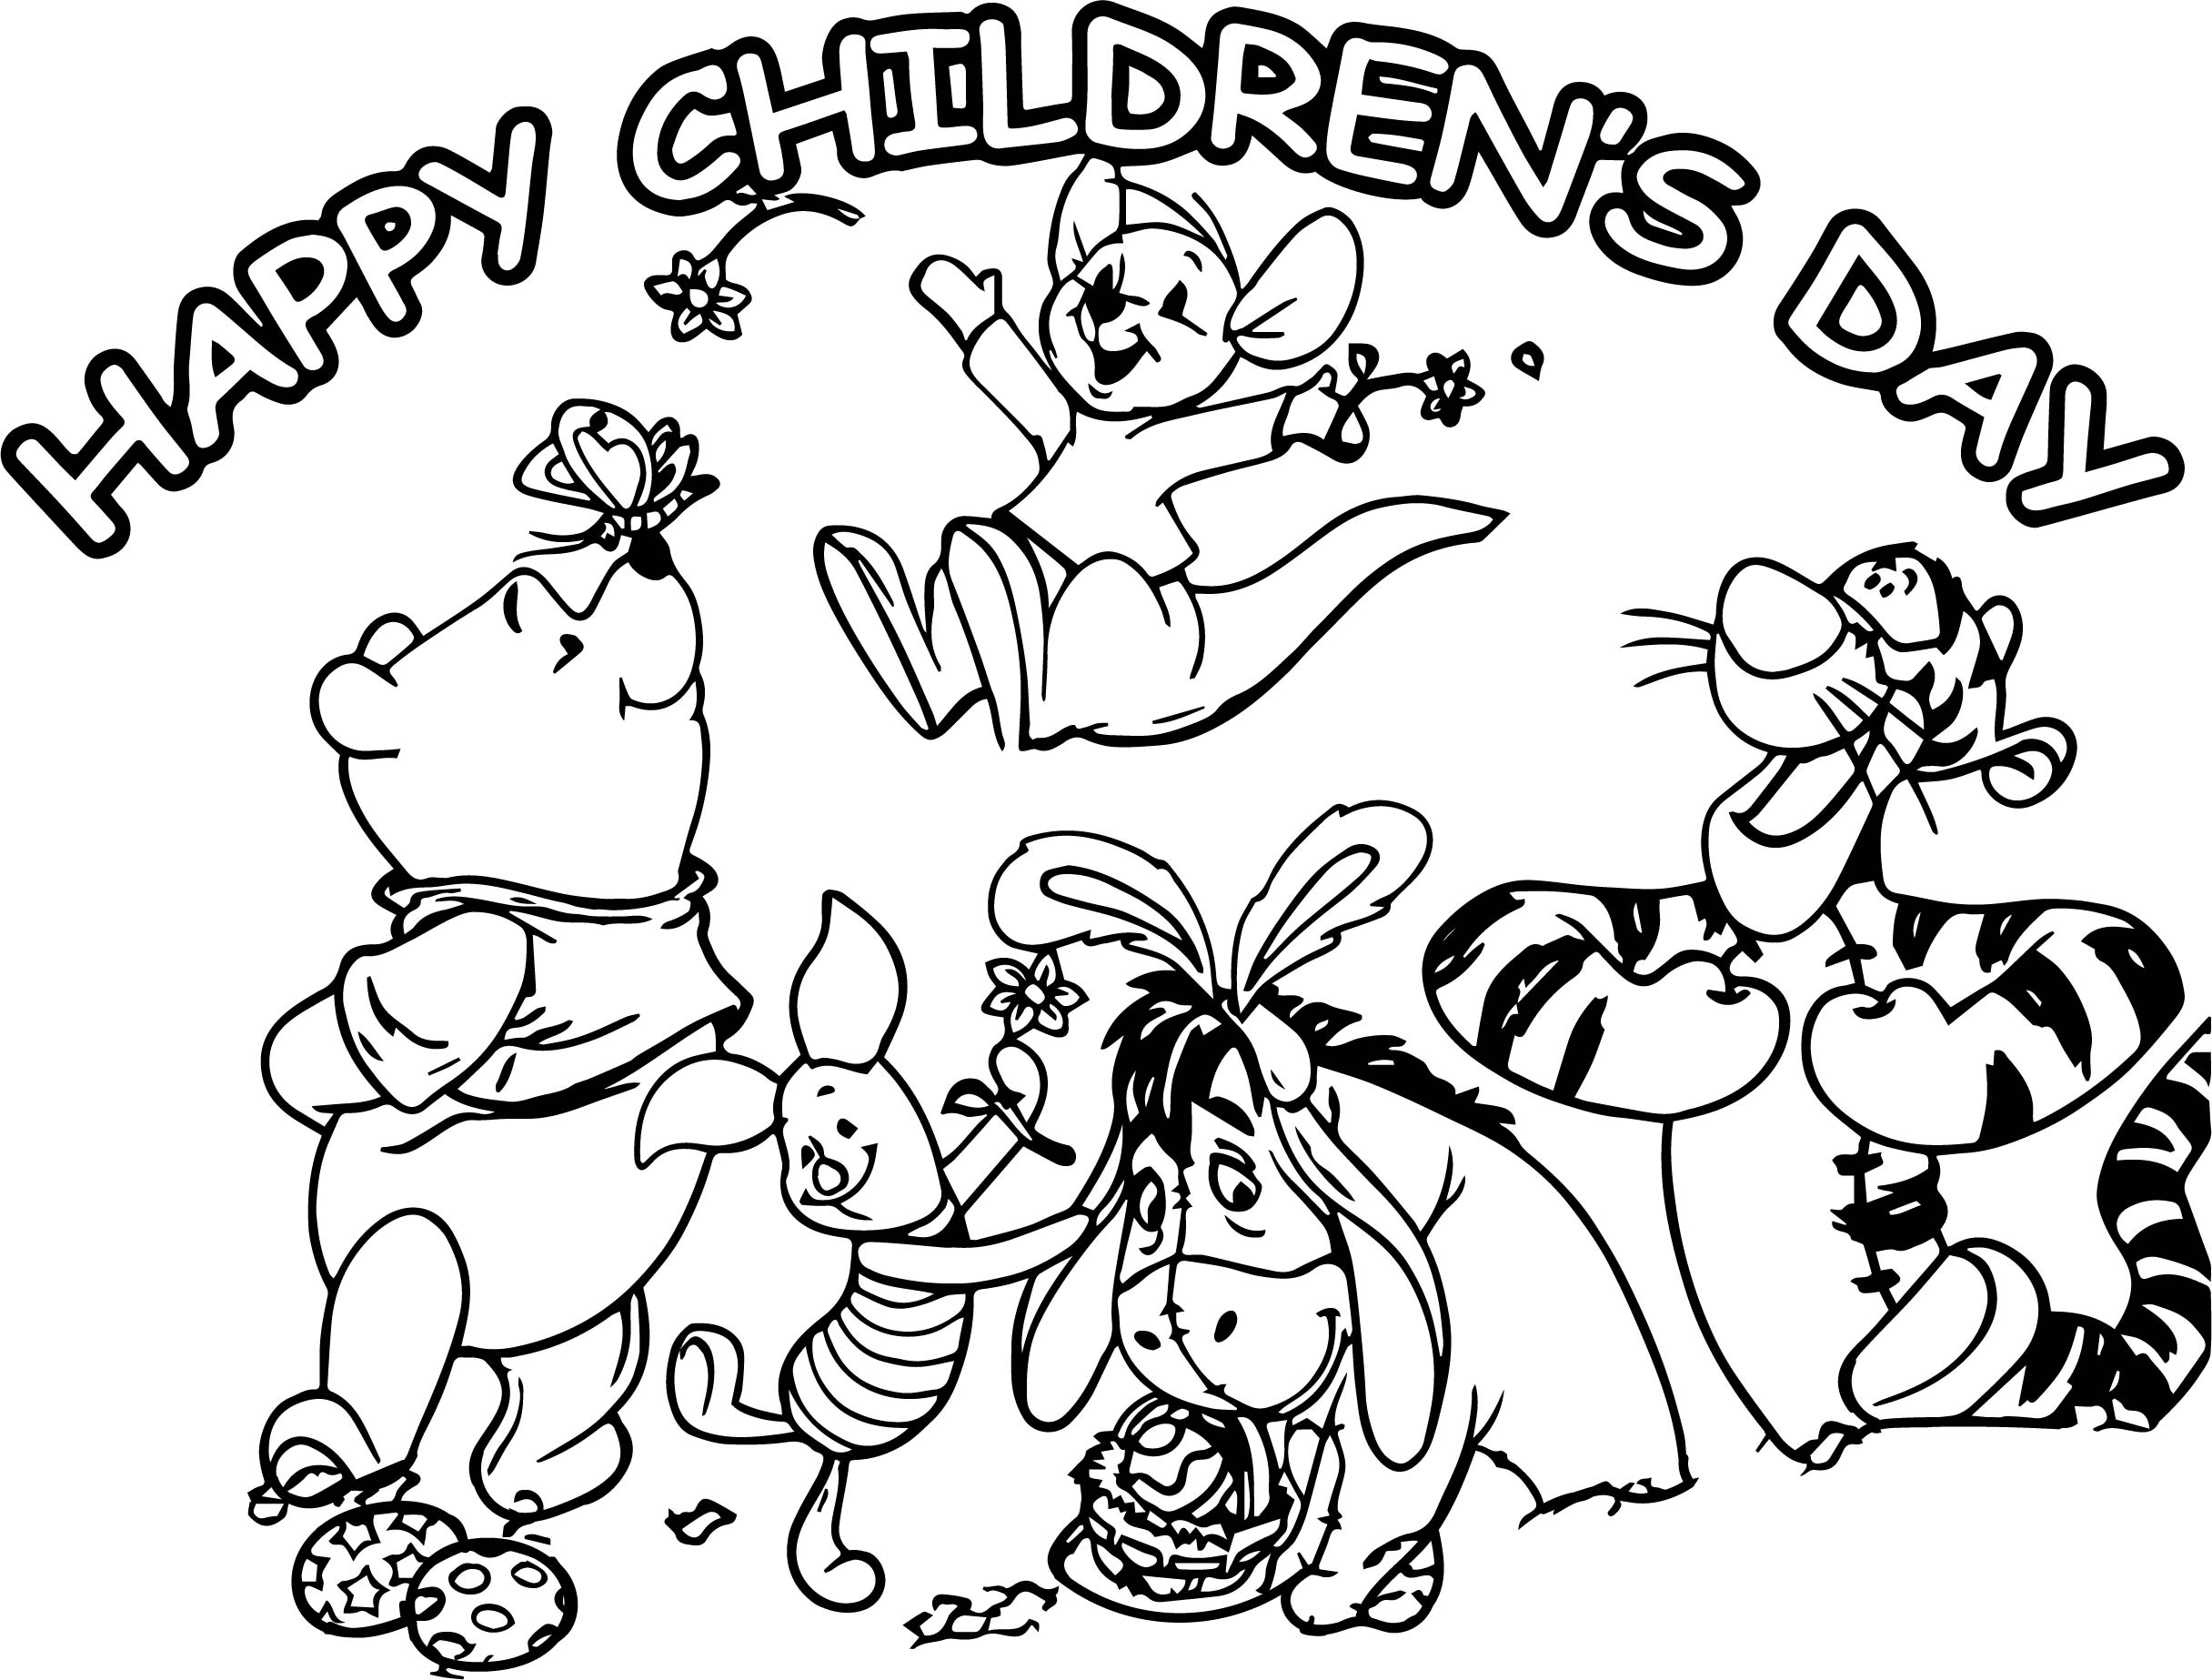 Happy Childrens Day Animal Kingdom Graphic For Share On